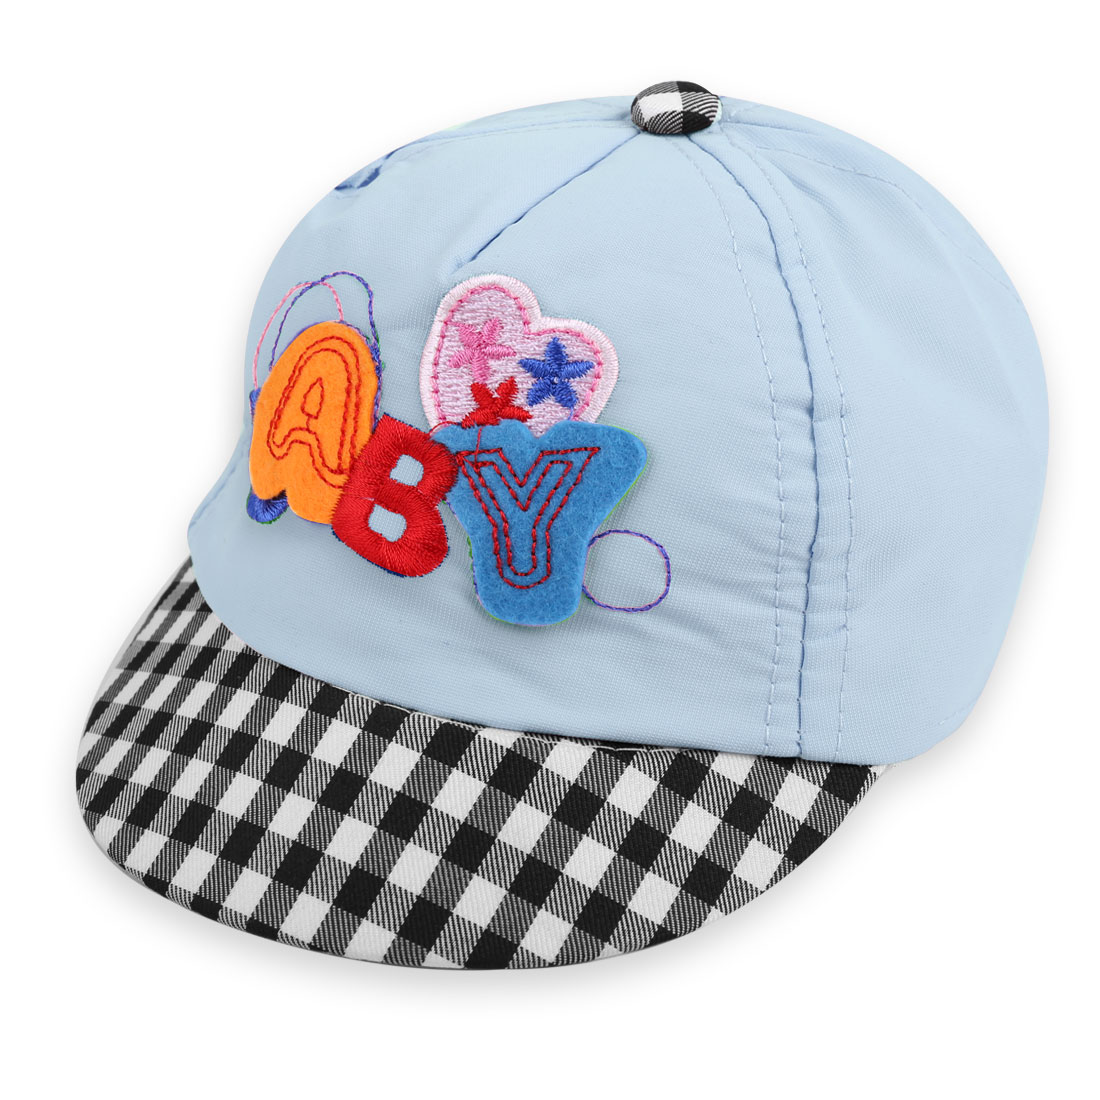 Babies Lovely Baby Blue Elastic Strap Design Check Pattern Visor Hat